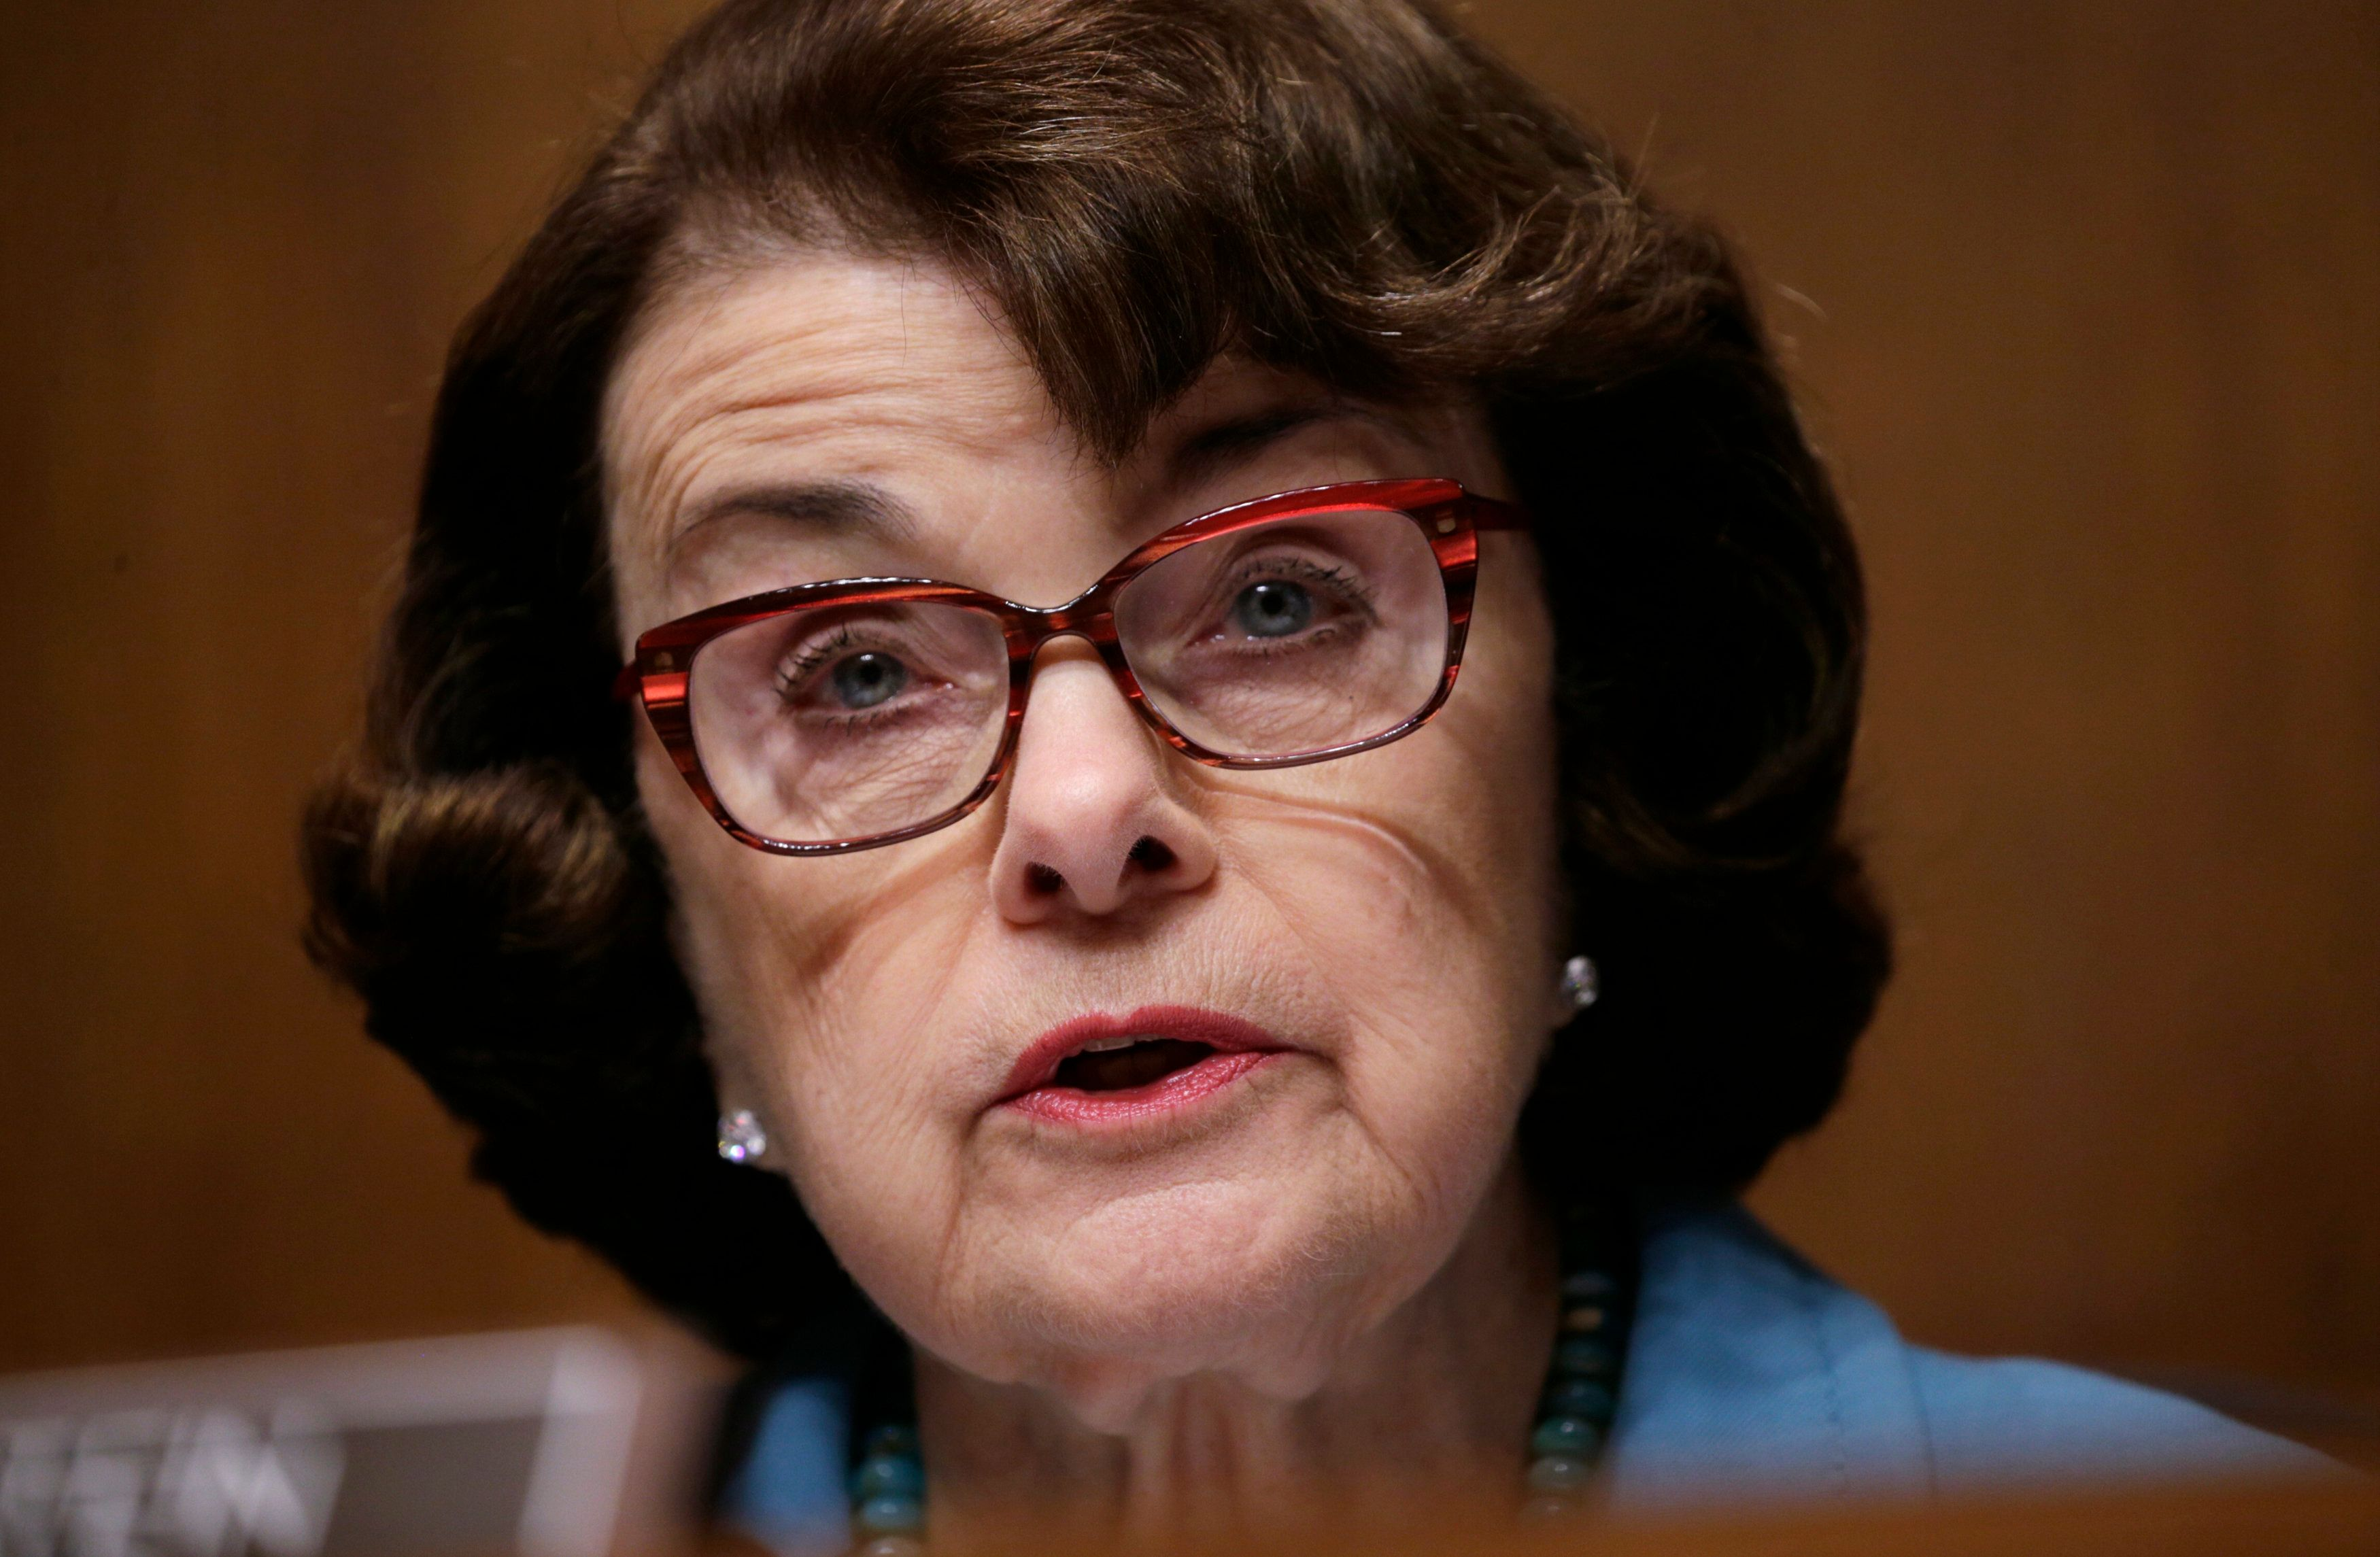 The Senate Judiciary Committee's ranking Democrat, Dianne Feinstein of California, wants Attorney General Jeff Sessions to te